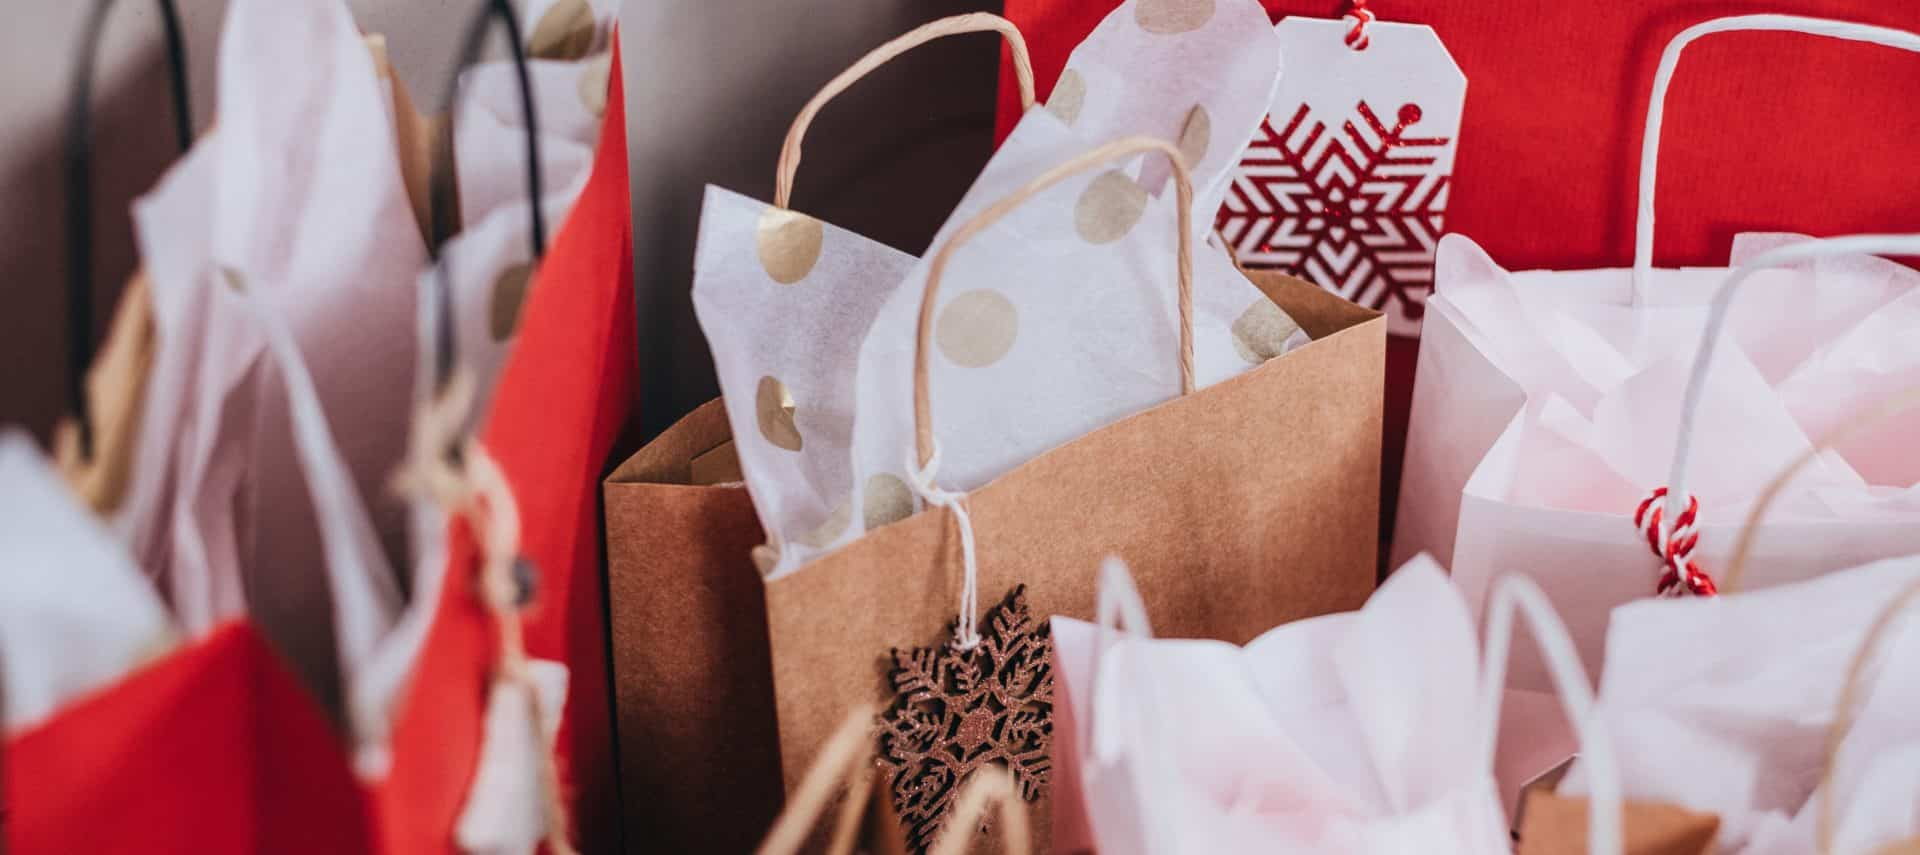 Several holiday shopping bags